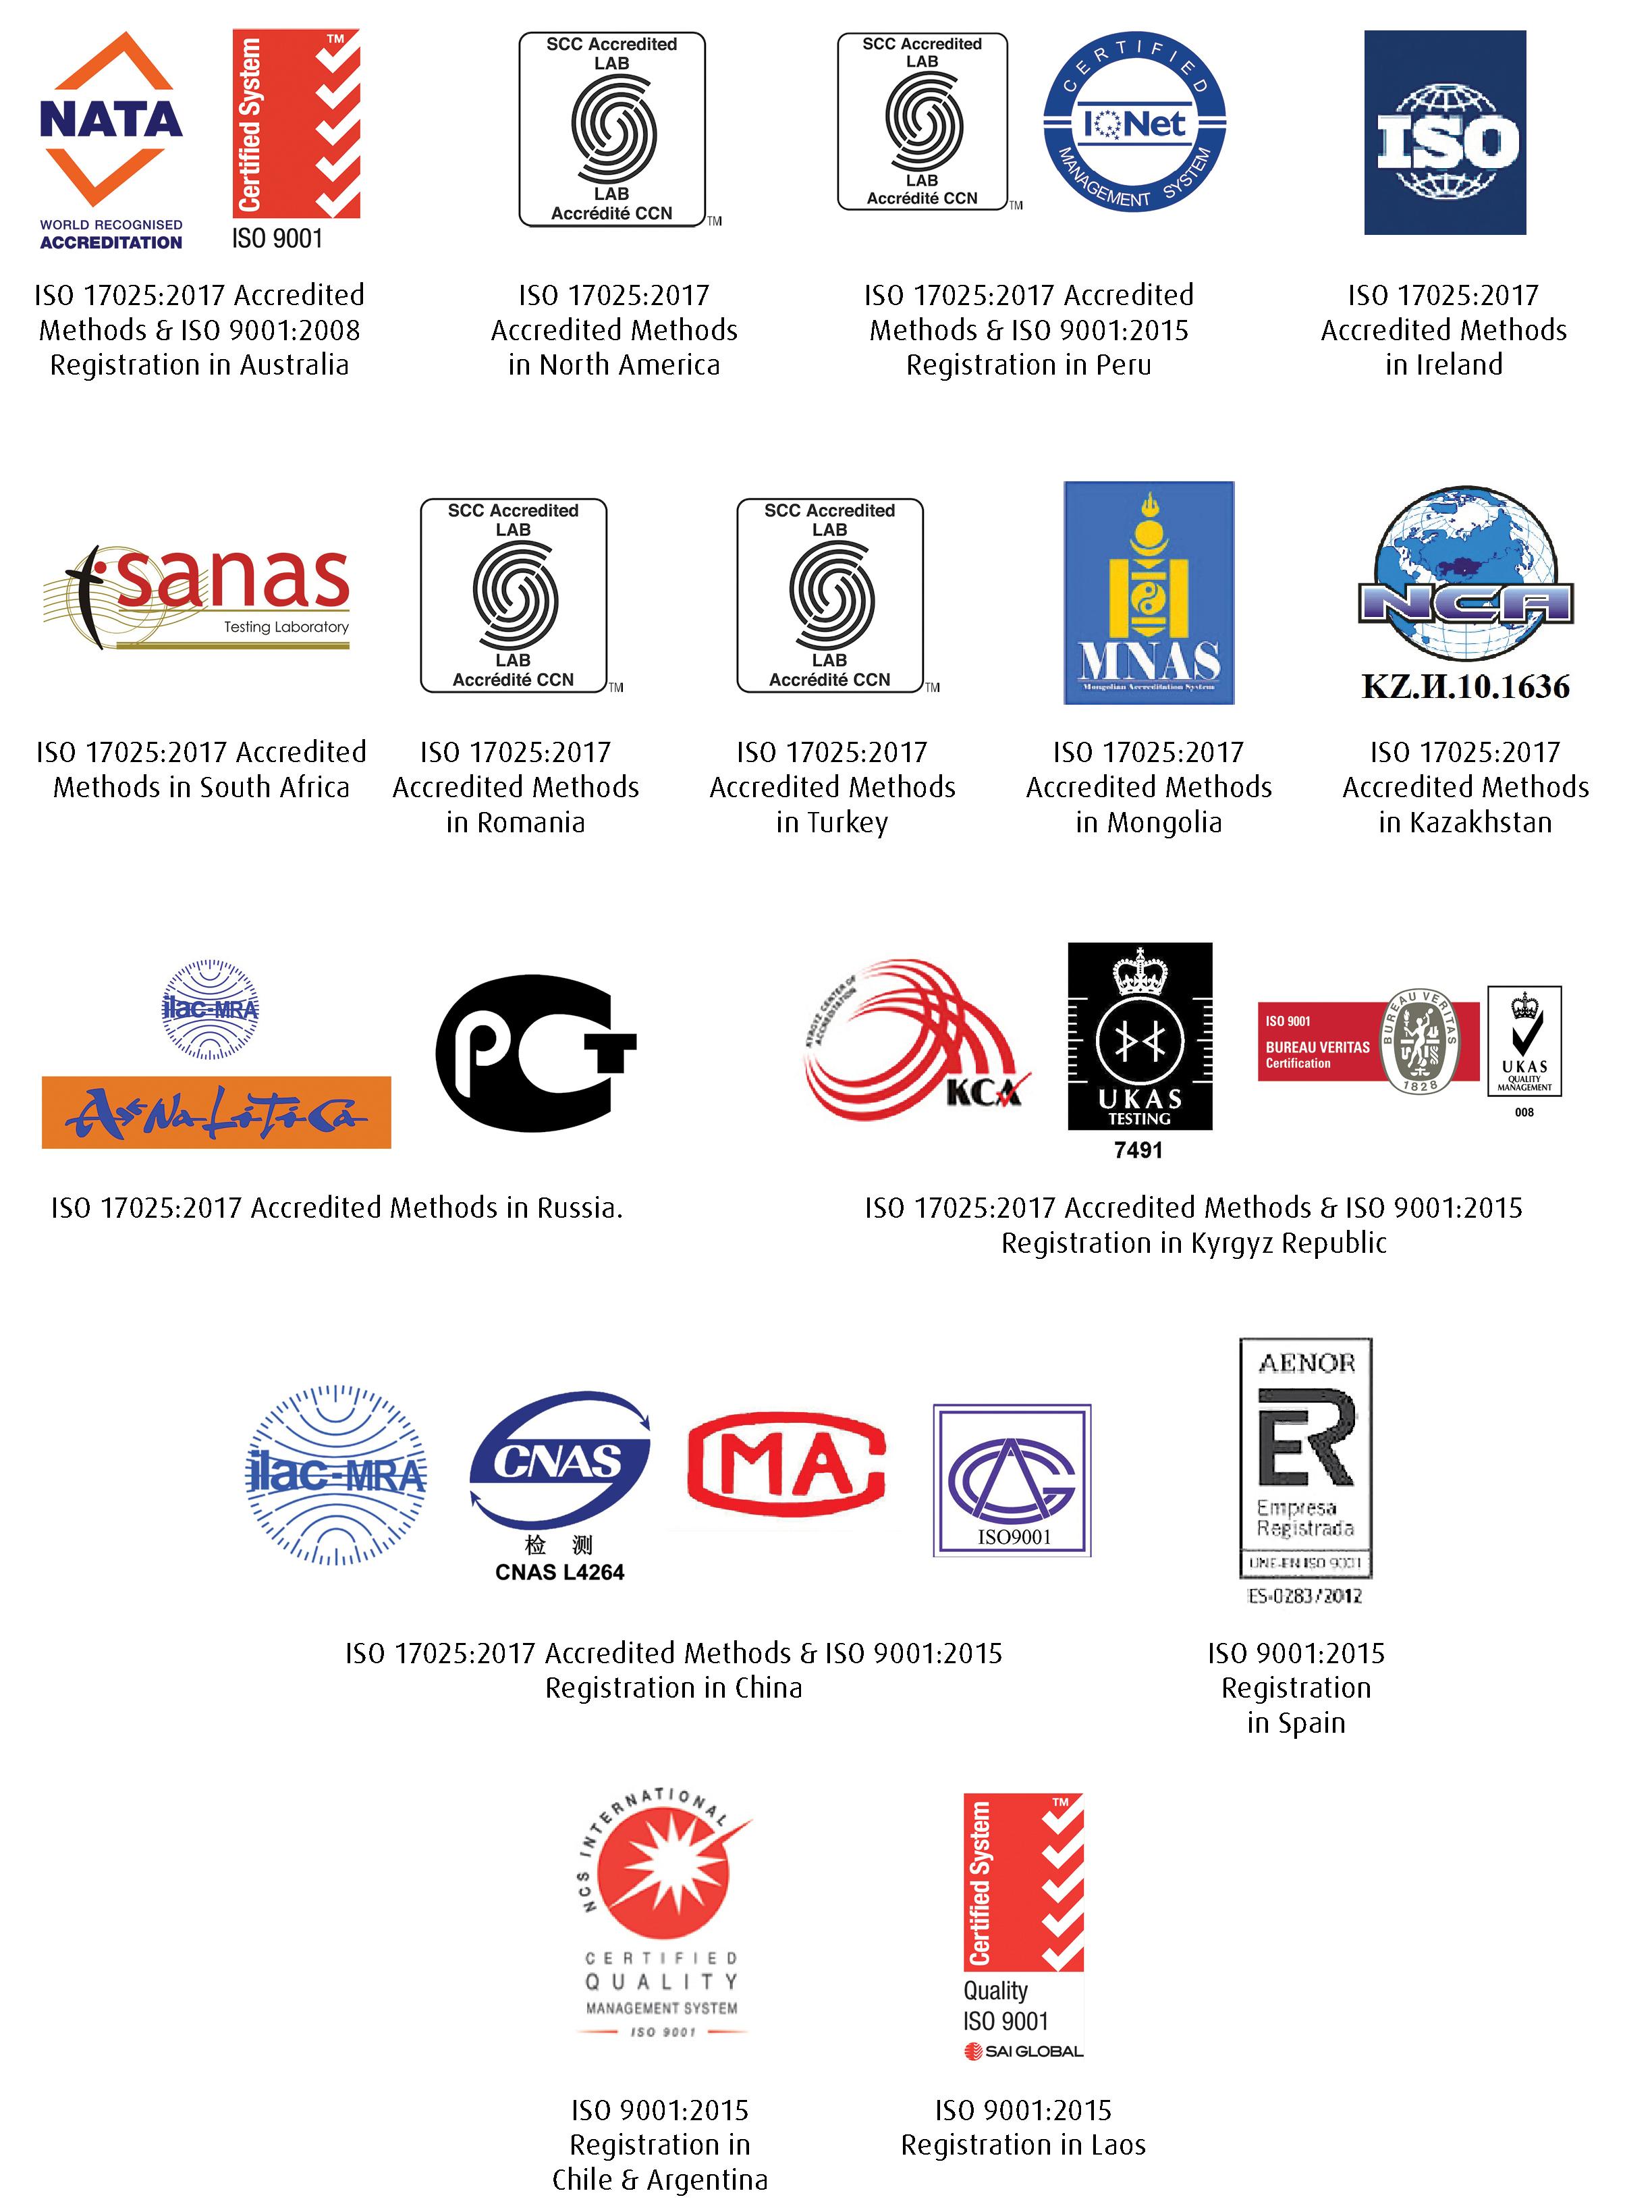 Image show all ISO accreditations